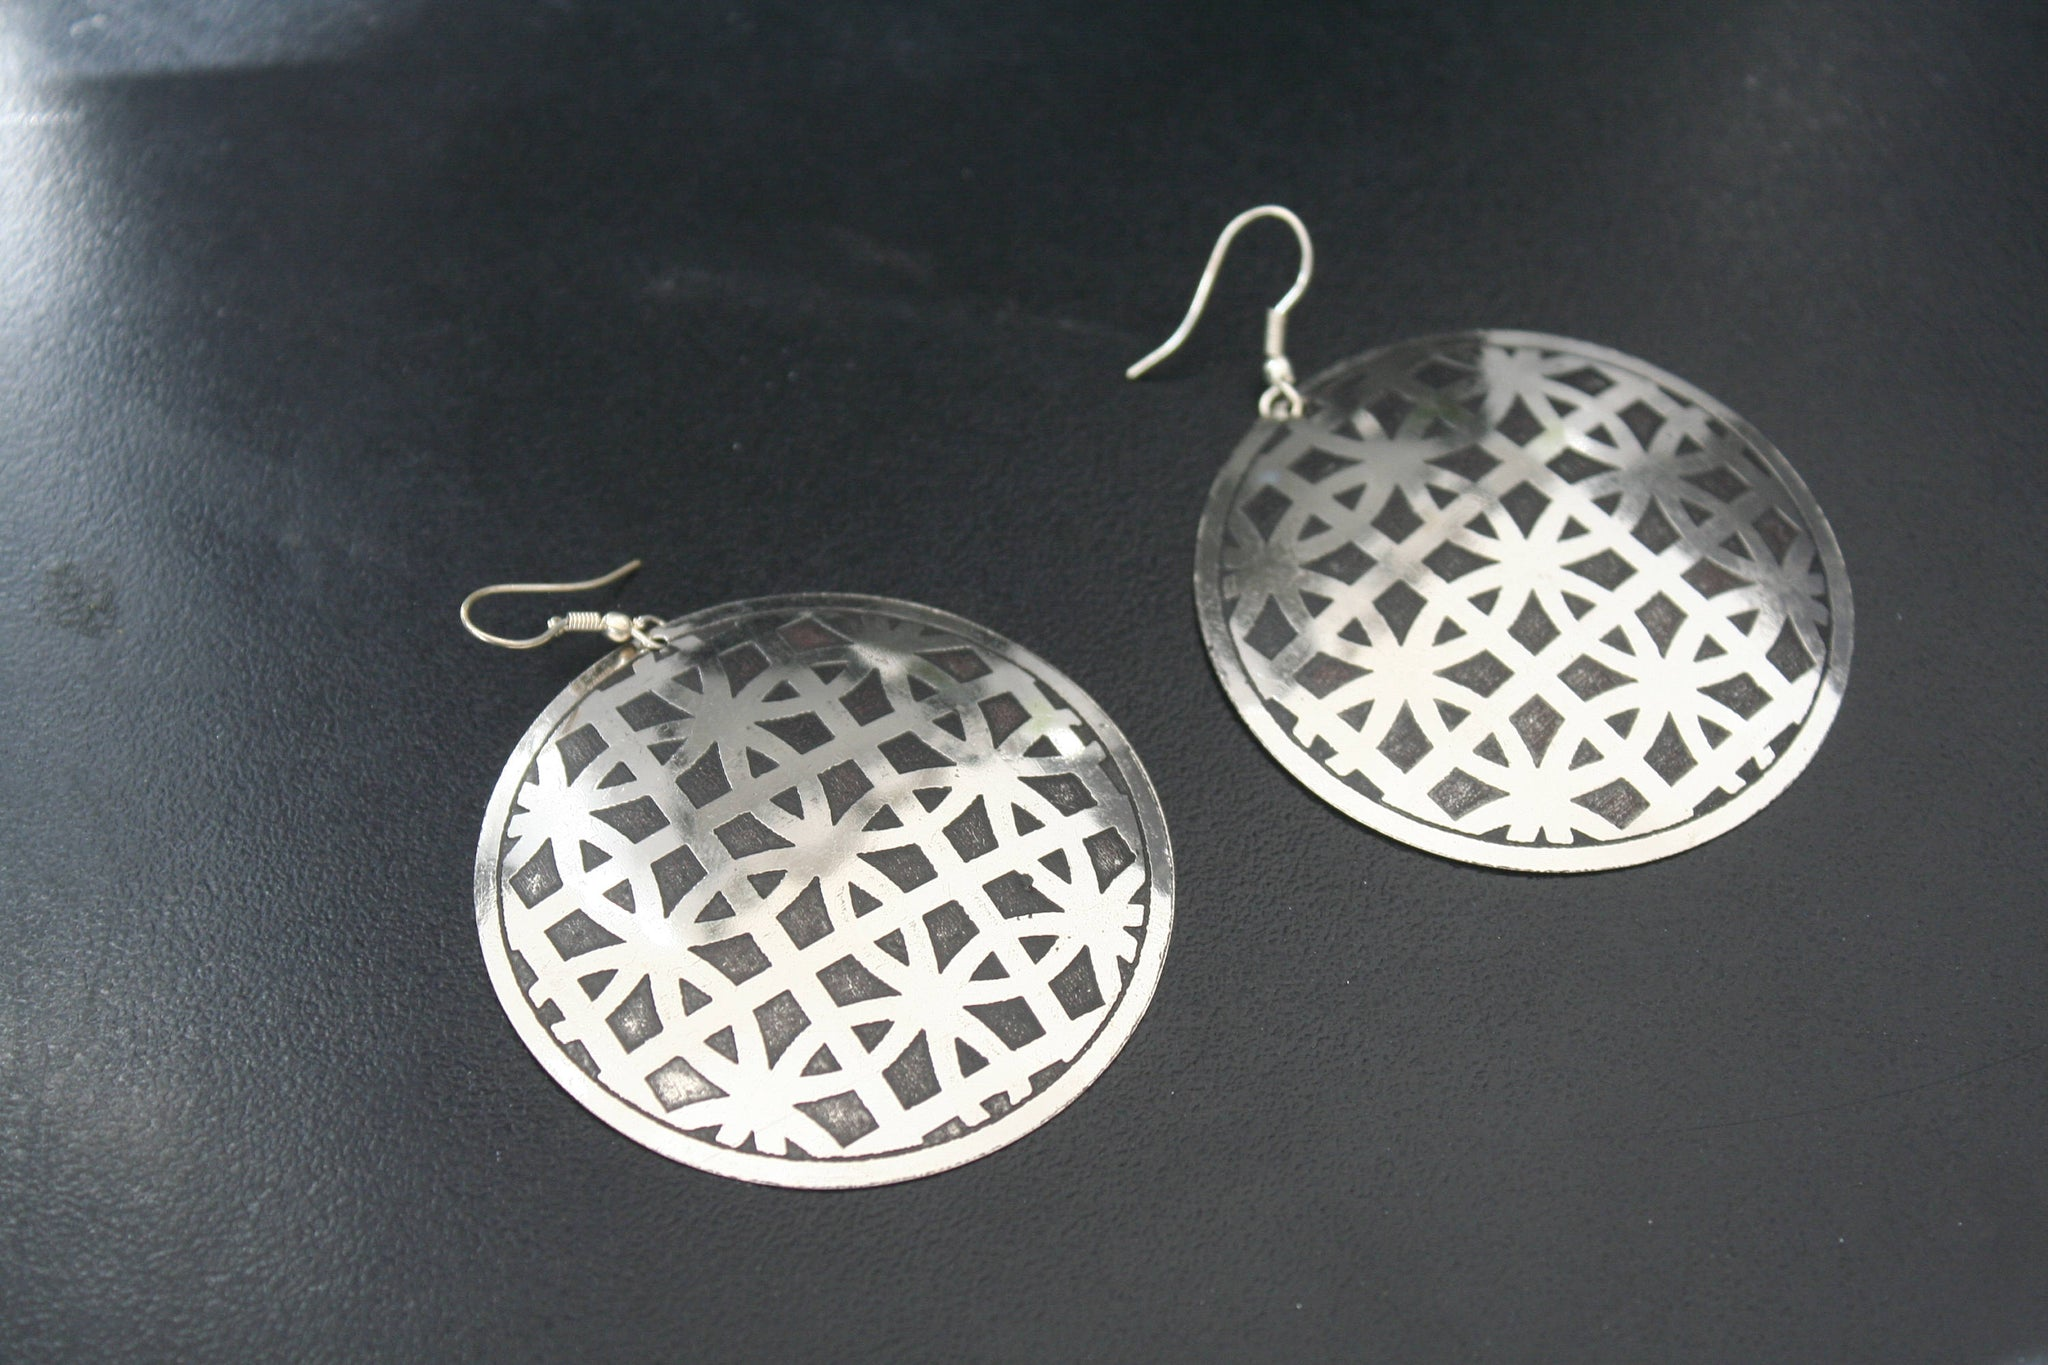 FLOWER OF LIFE Earrings - Silver Earrings, Hippie Earrings, Psy, Boho Earrings, Tribal Earrings, Bohemian, Sacred Geometry Earrings, Gypsy